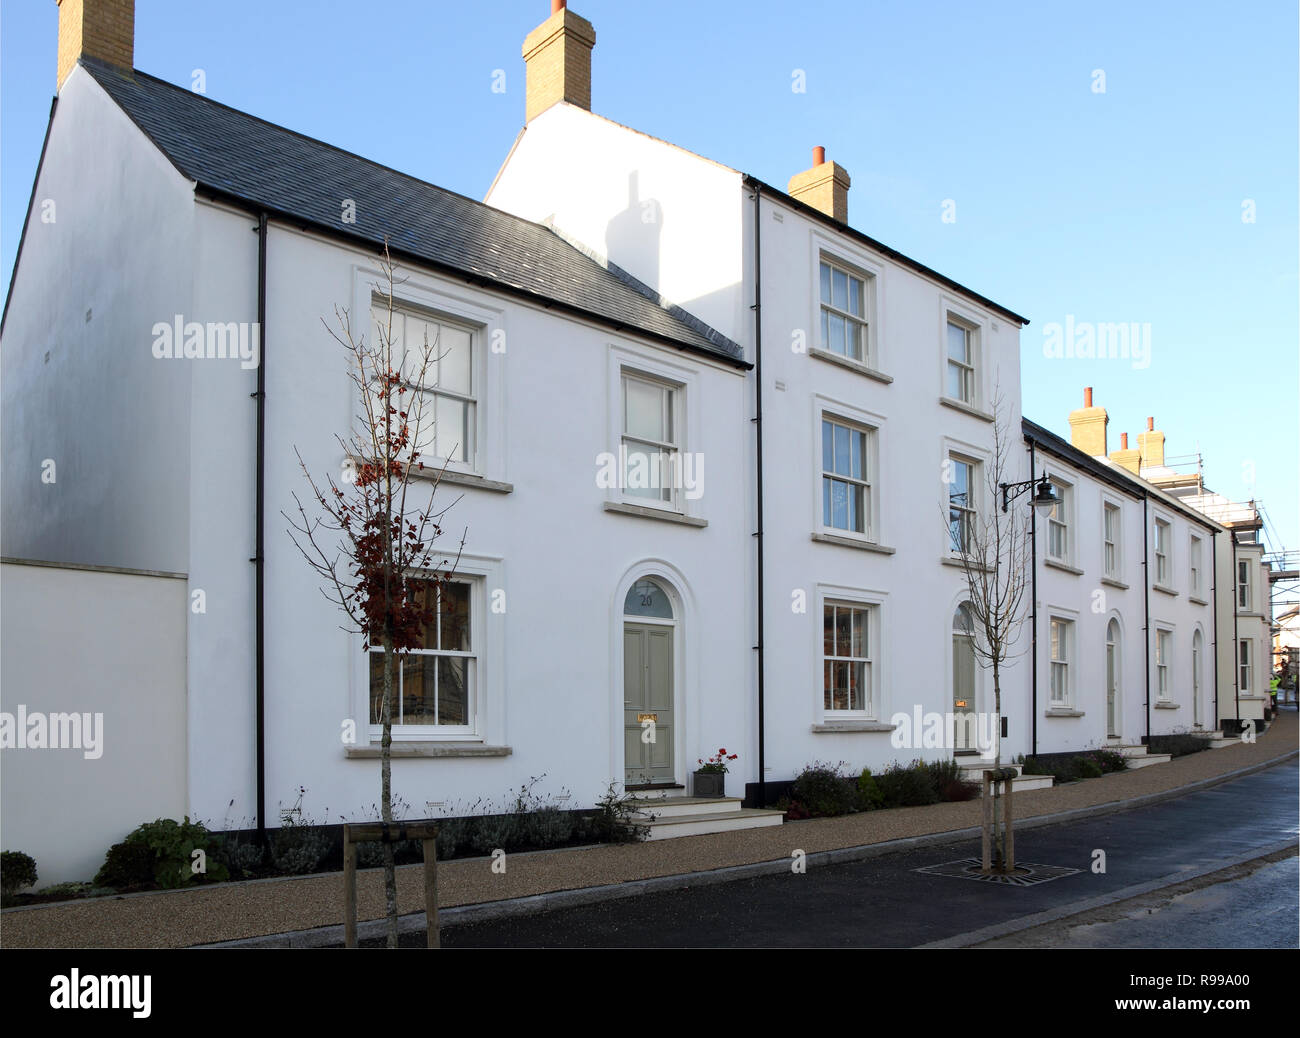 Poundbury, Dorset, England, an experimental New Town favoured by Prince Charles - Stock Image